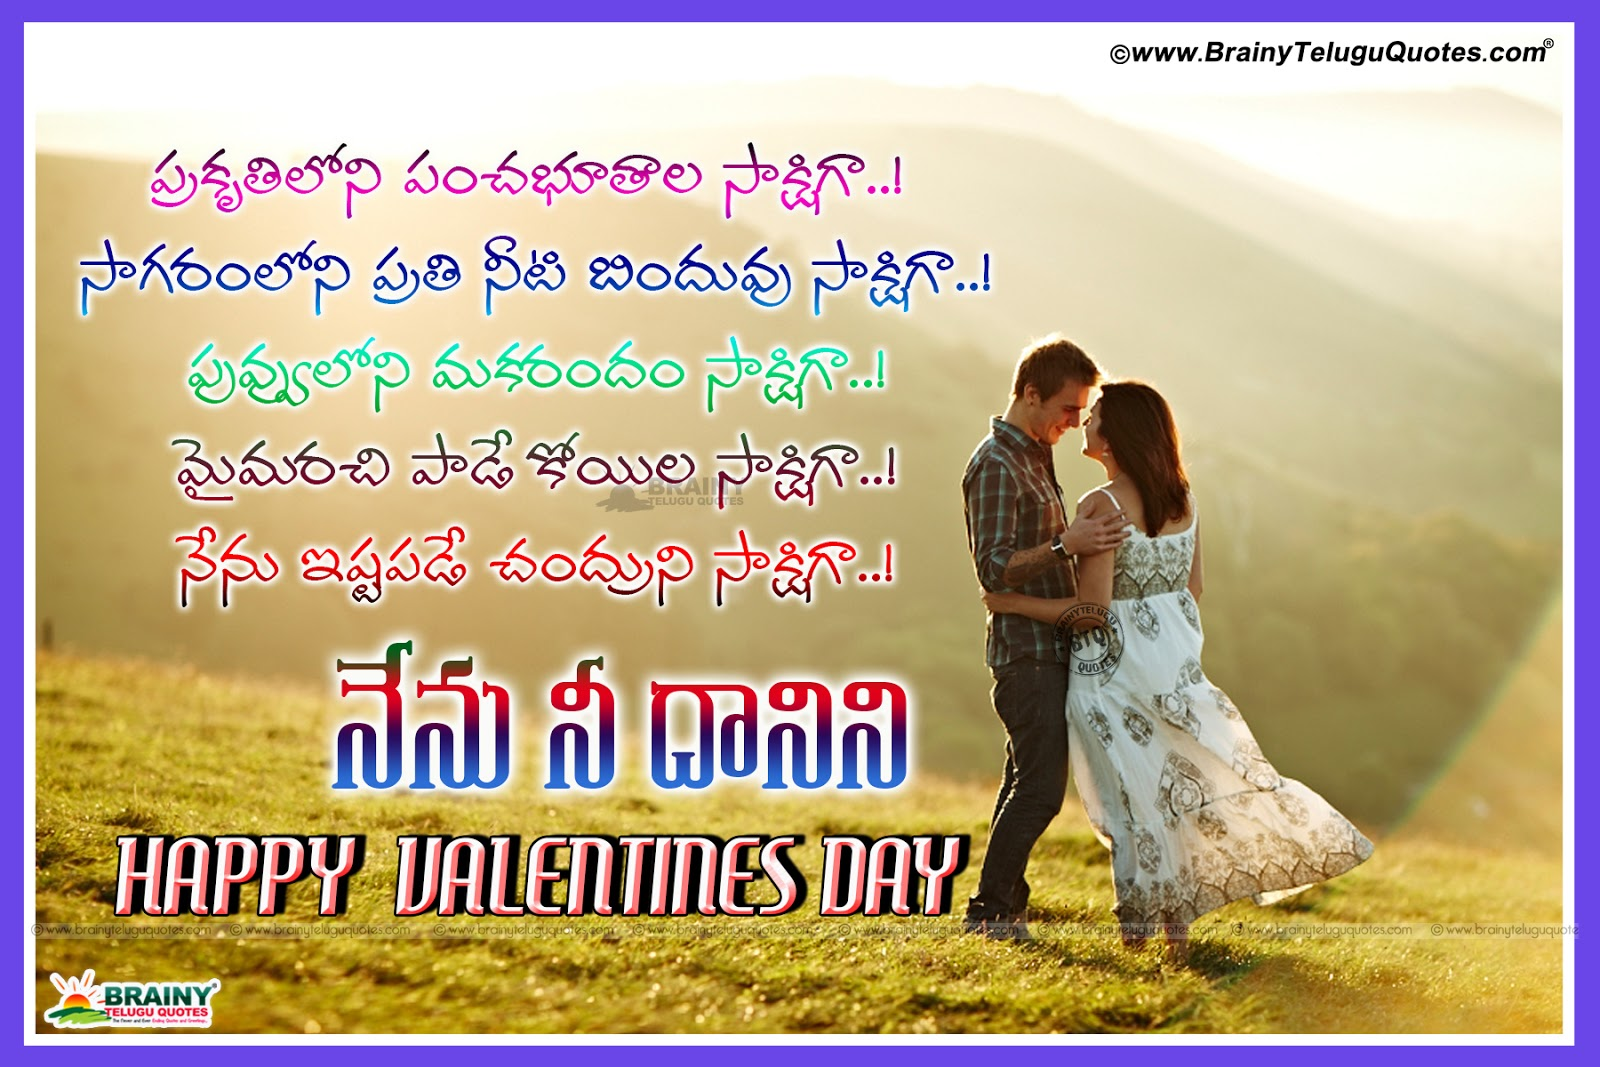 Valentine Day Messages for GirlfriendHappy Valentines Day Wishes – What to Write on Your Boyfriends Valentines Card